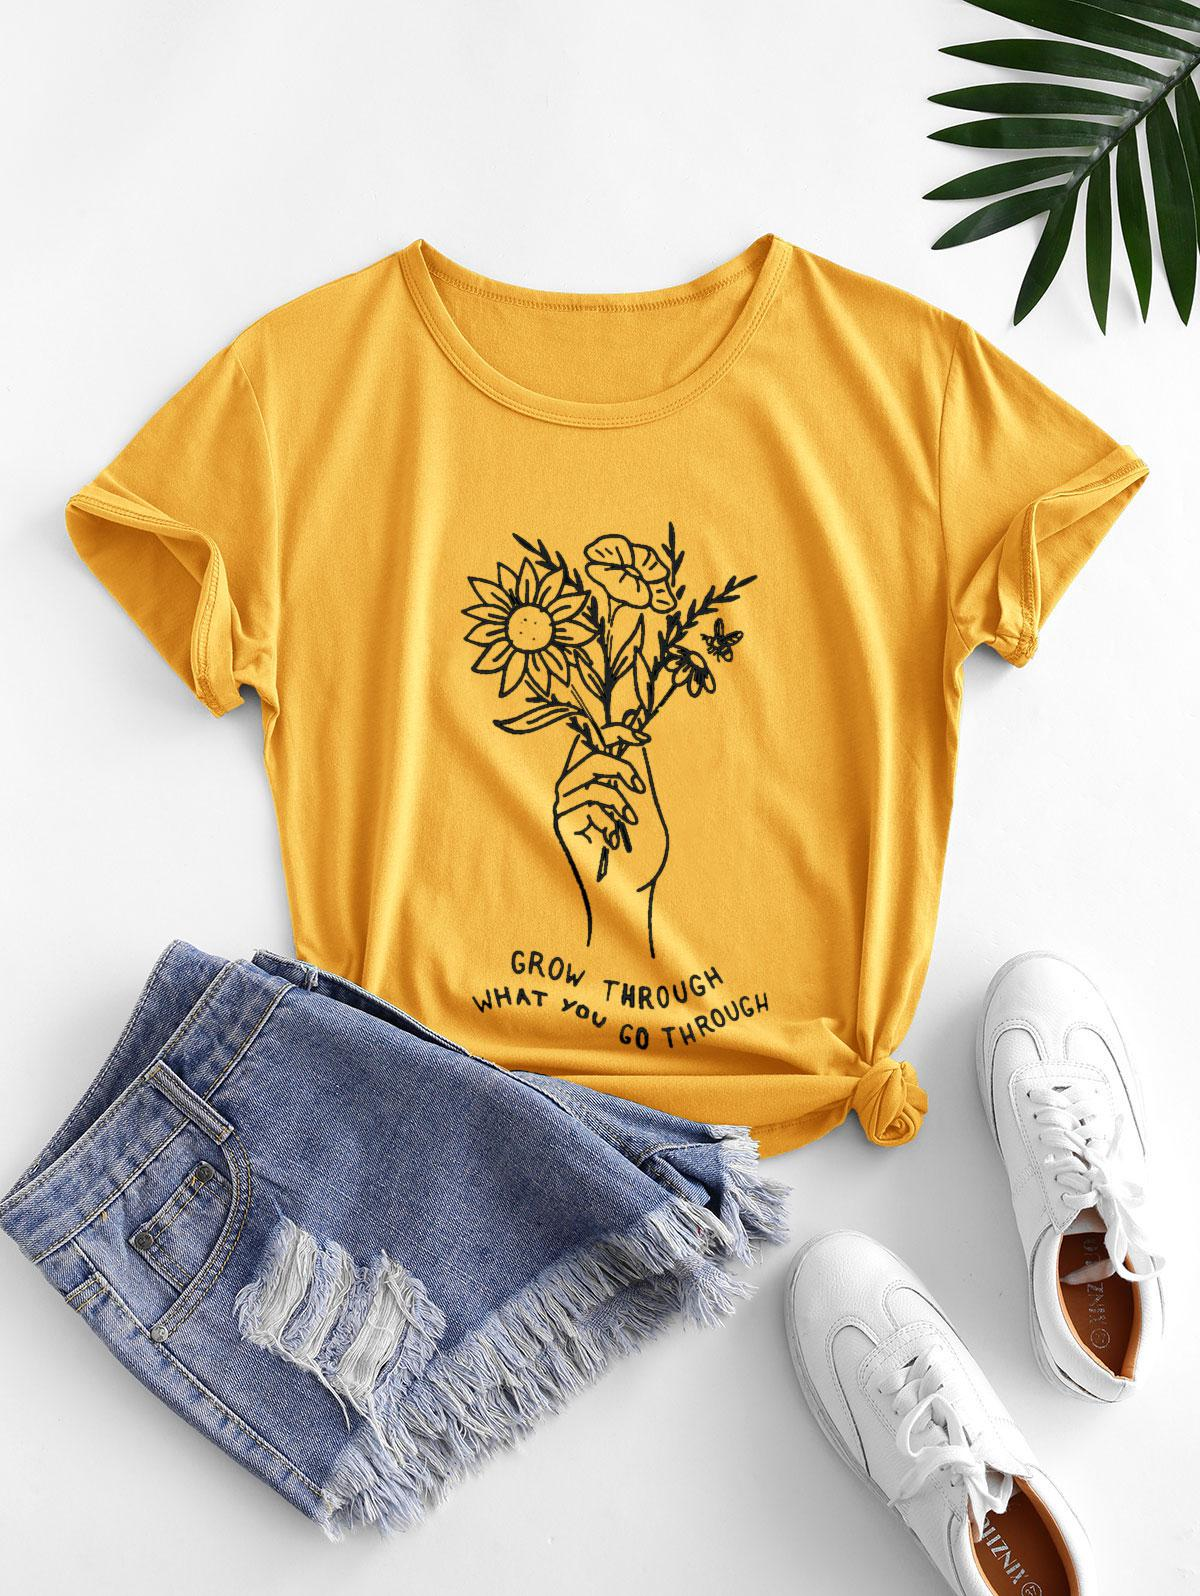 Holding Flower Sketch Graphic Short Sleeve Tee